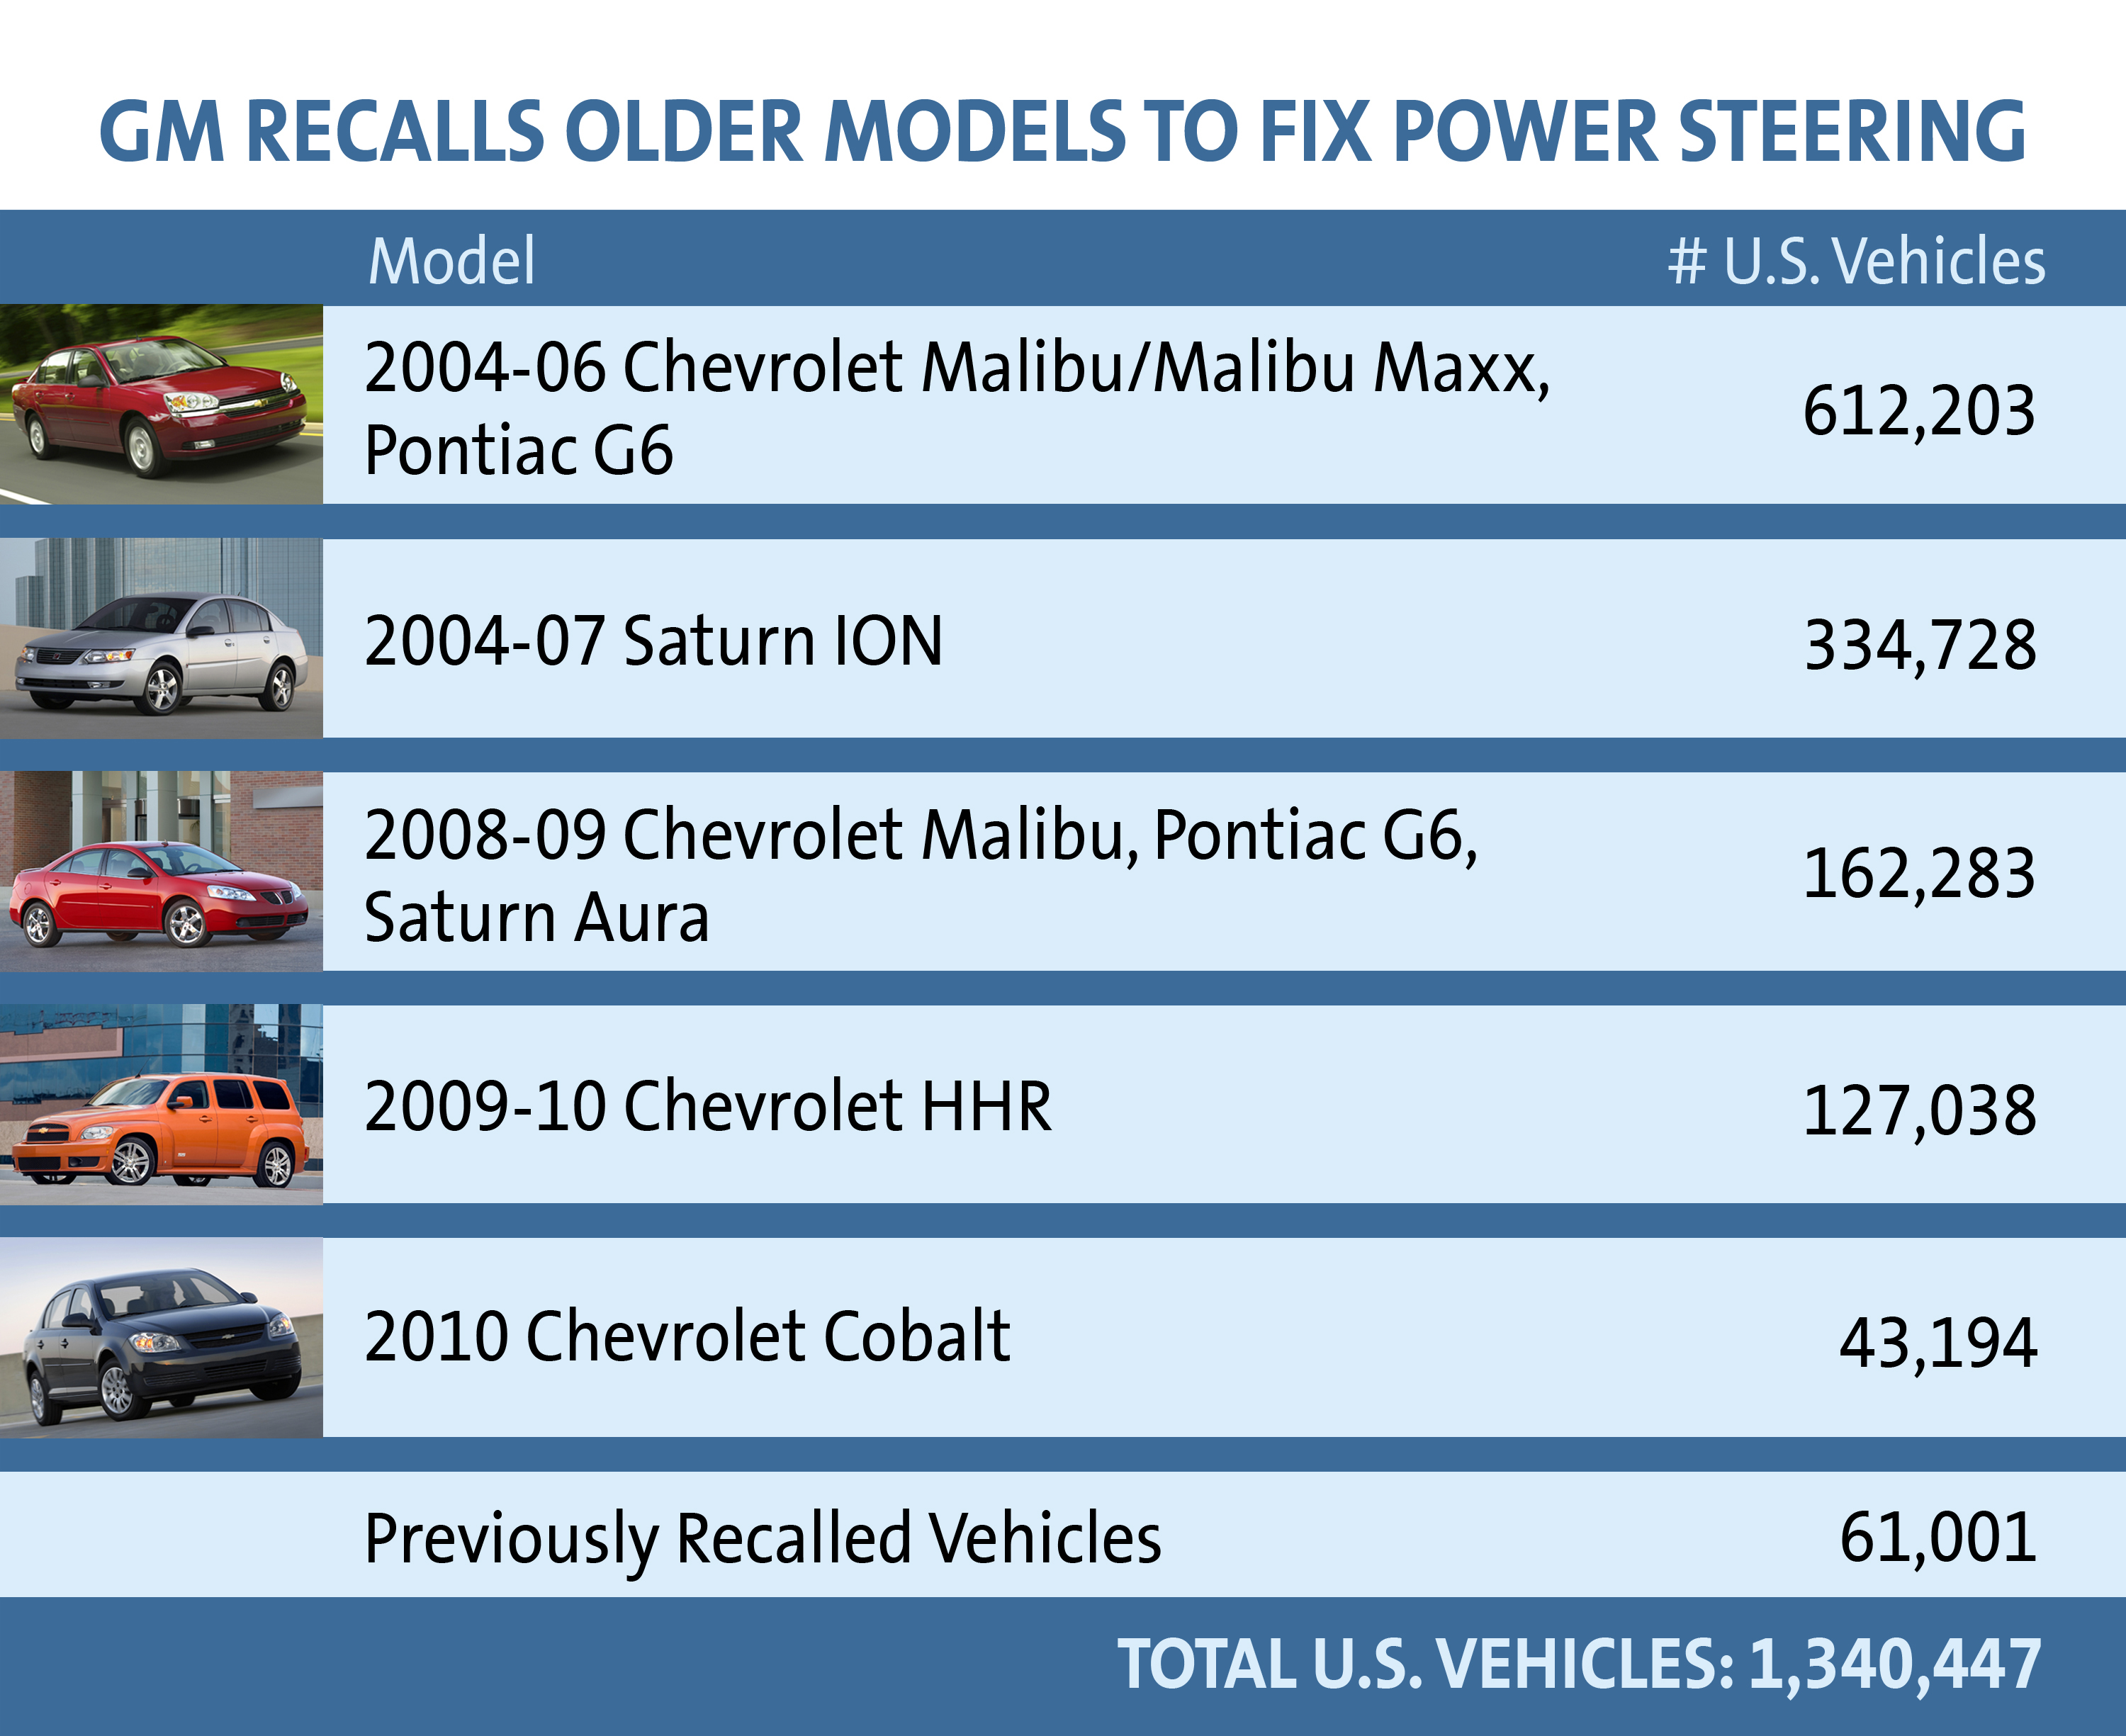 GM Recalls Older Model Vehicles to Fix Power Steering on